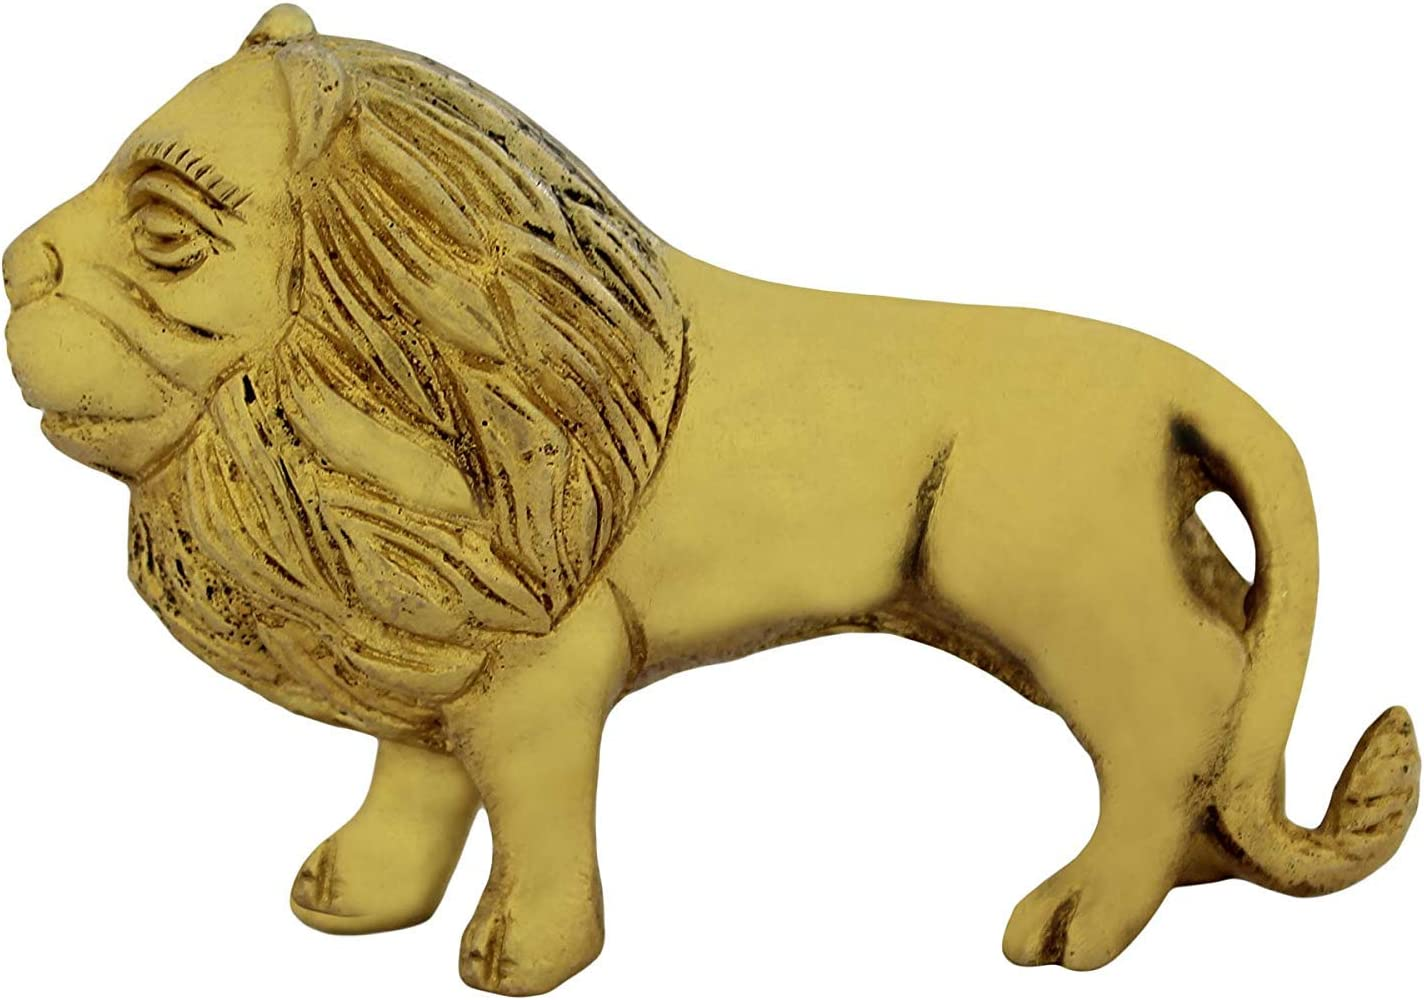 Vintage Beautiful Wild Lion Animal Figurine Ornament Model Toy Collector H